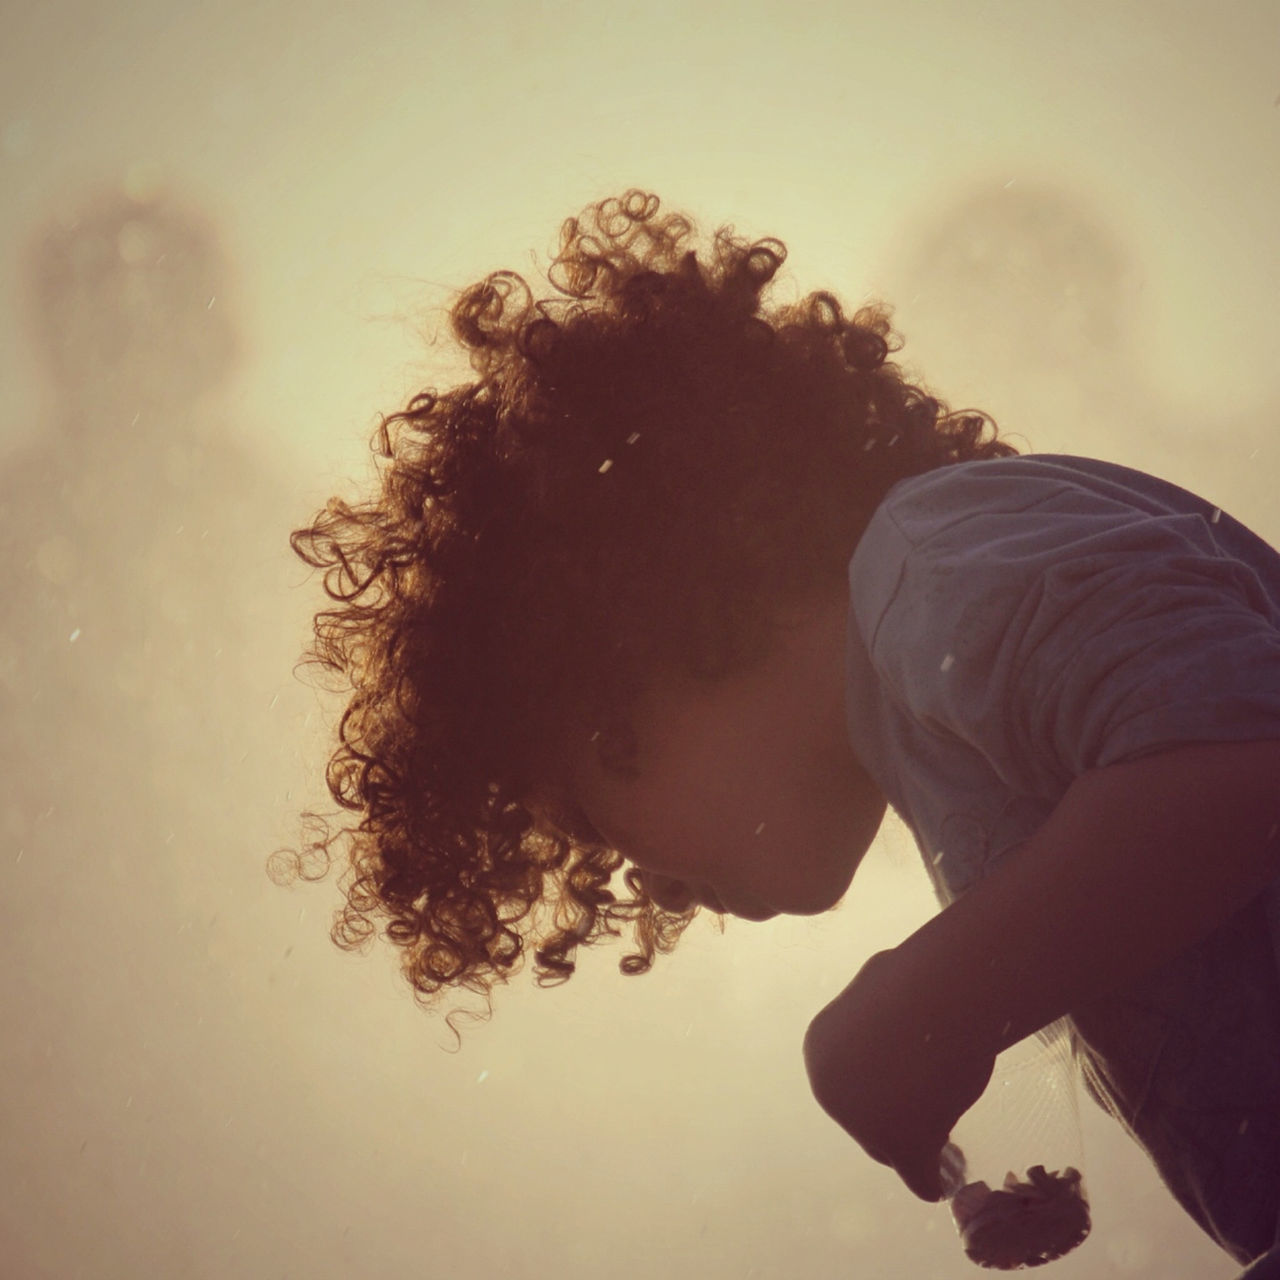 Boy with curly hair standing outdoors